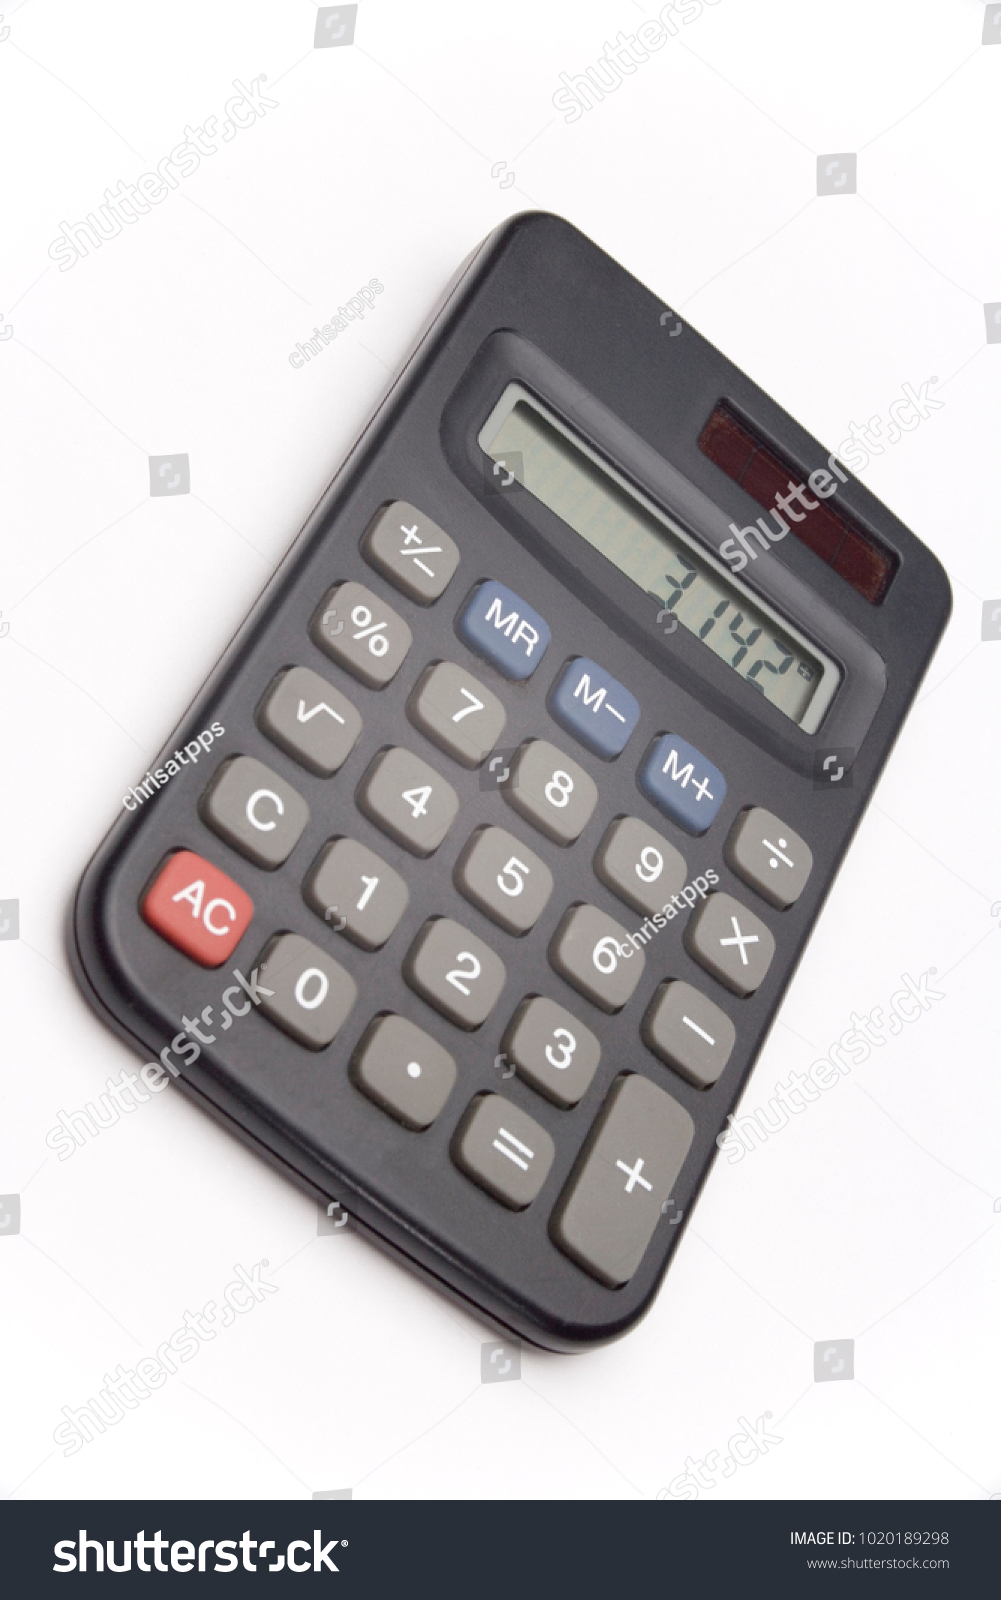 calculator on white background showing value of pi ez canvas